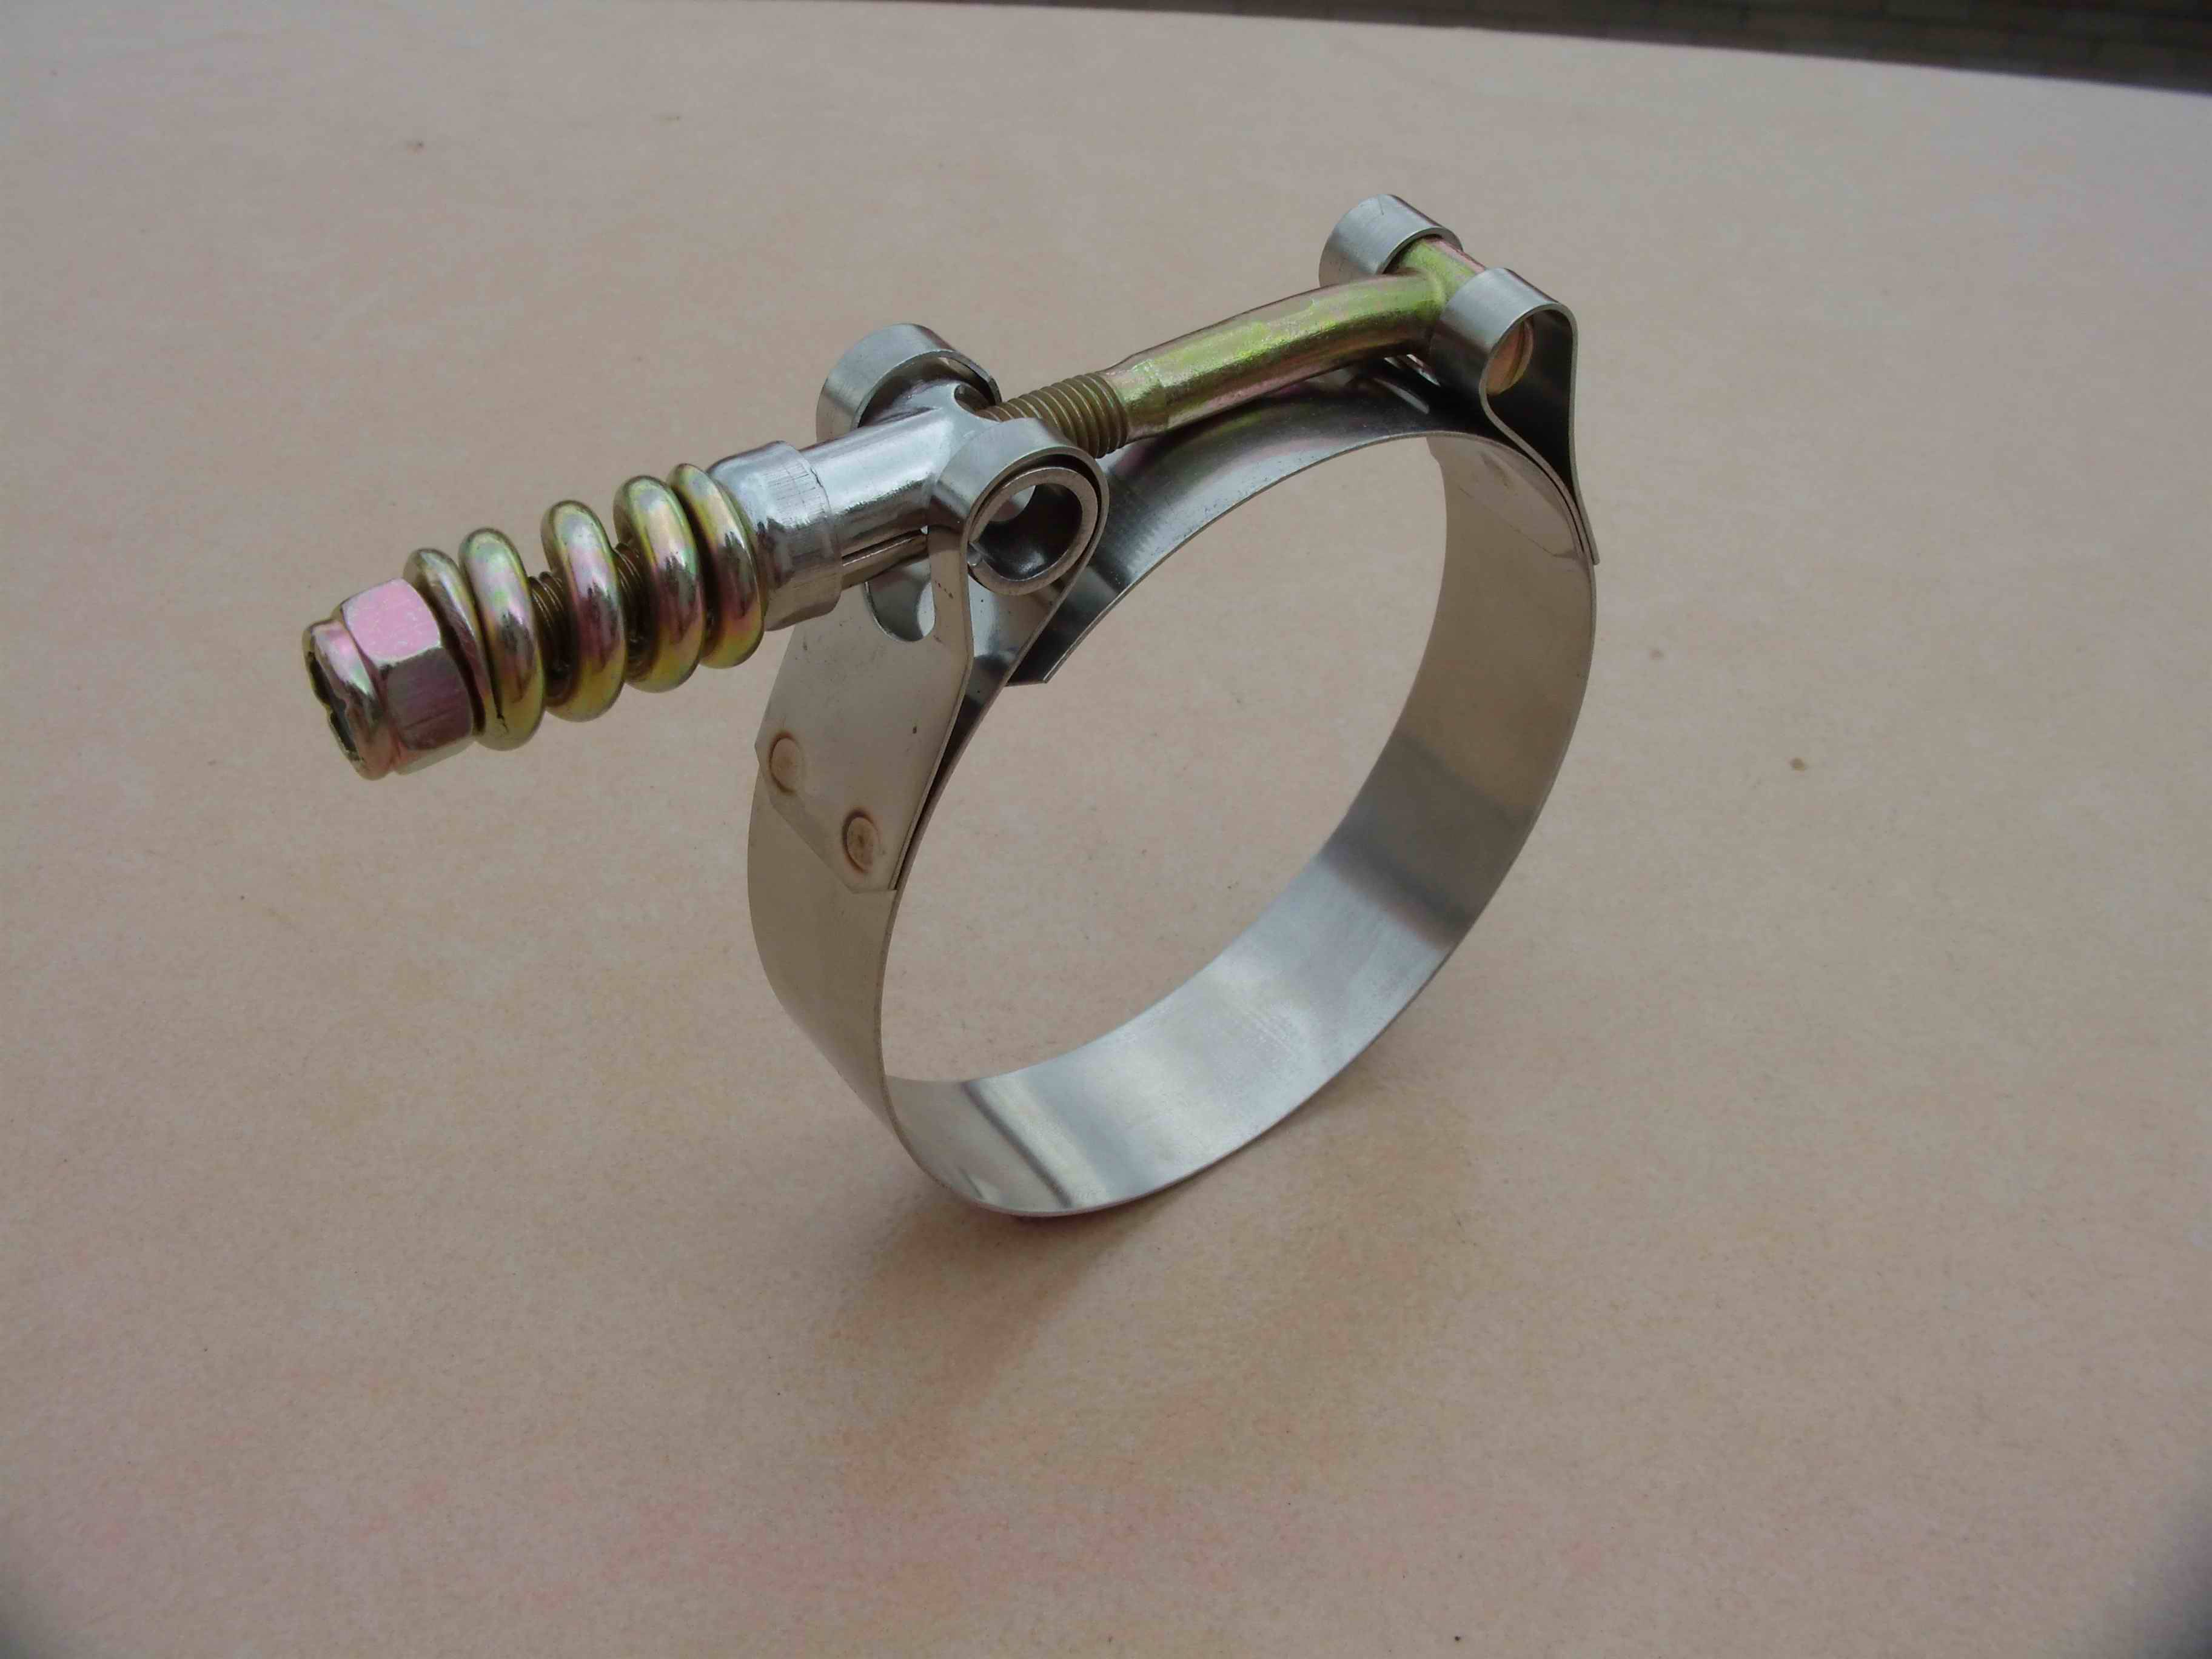 Spring-Loaded Clamps